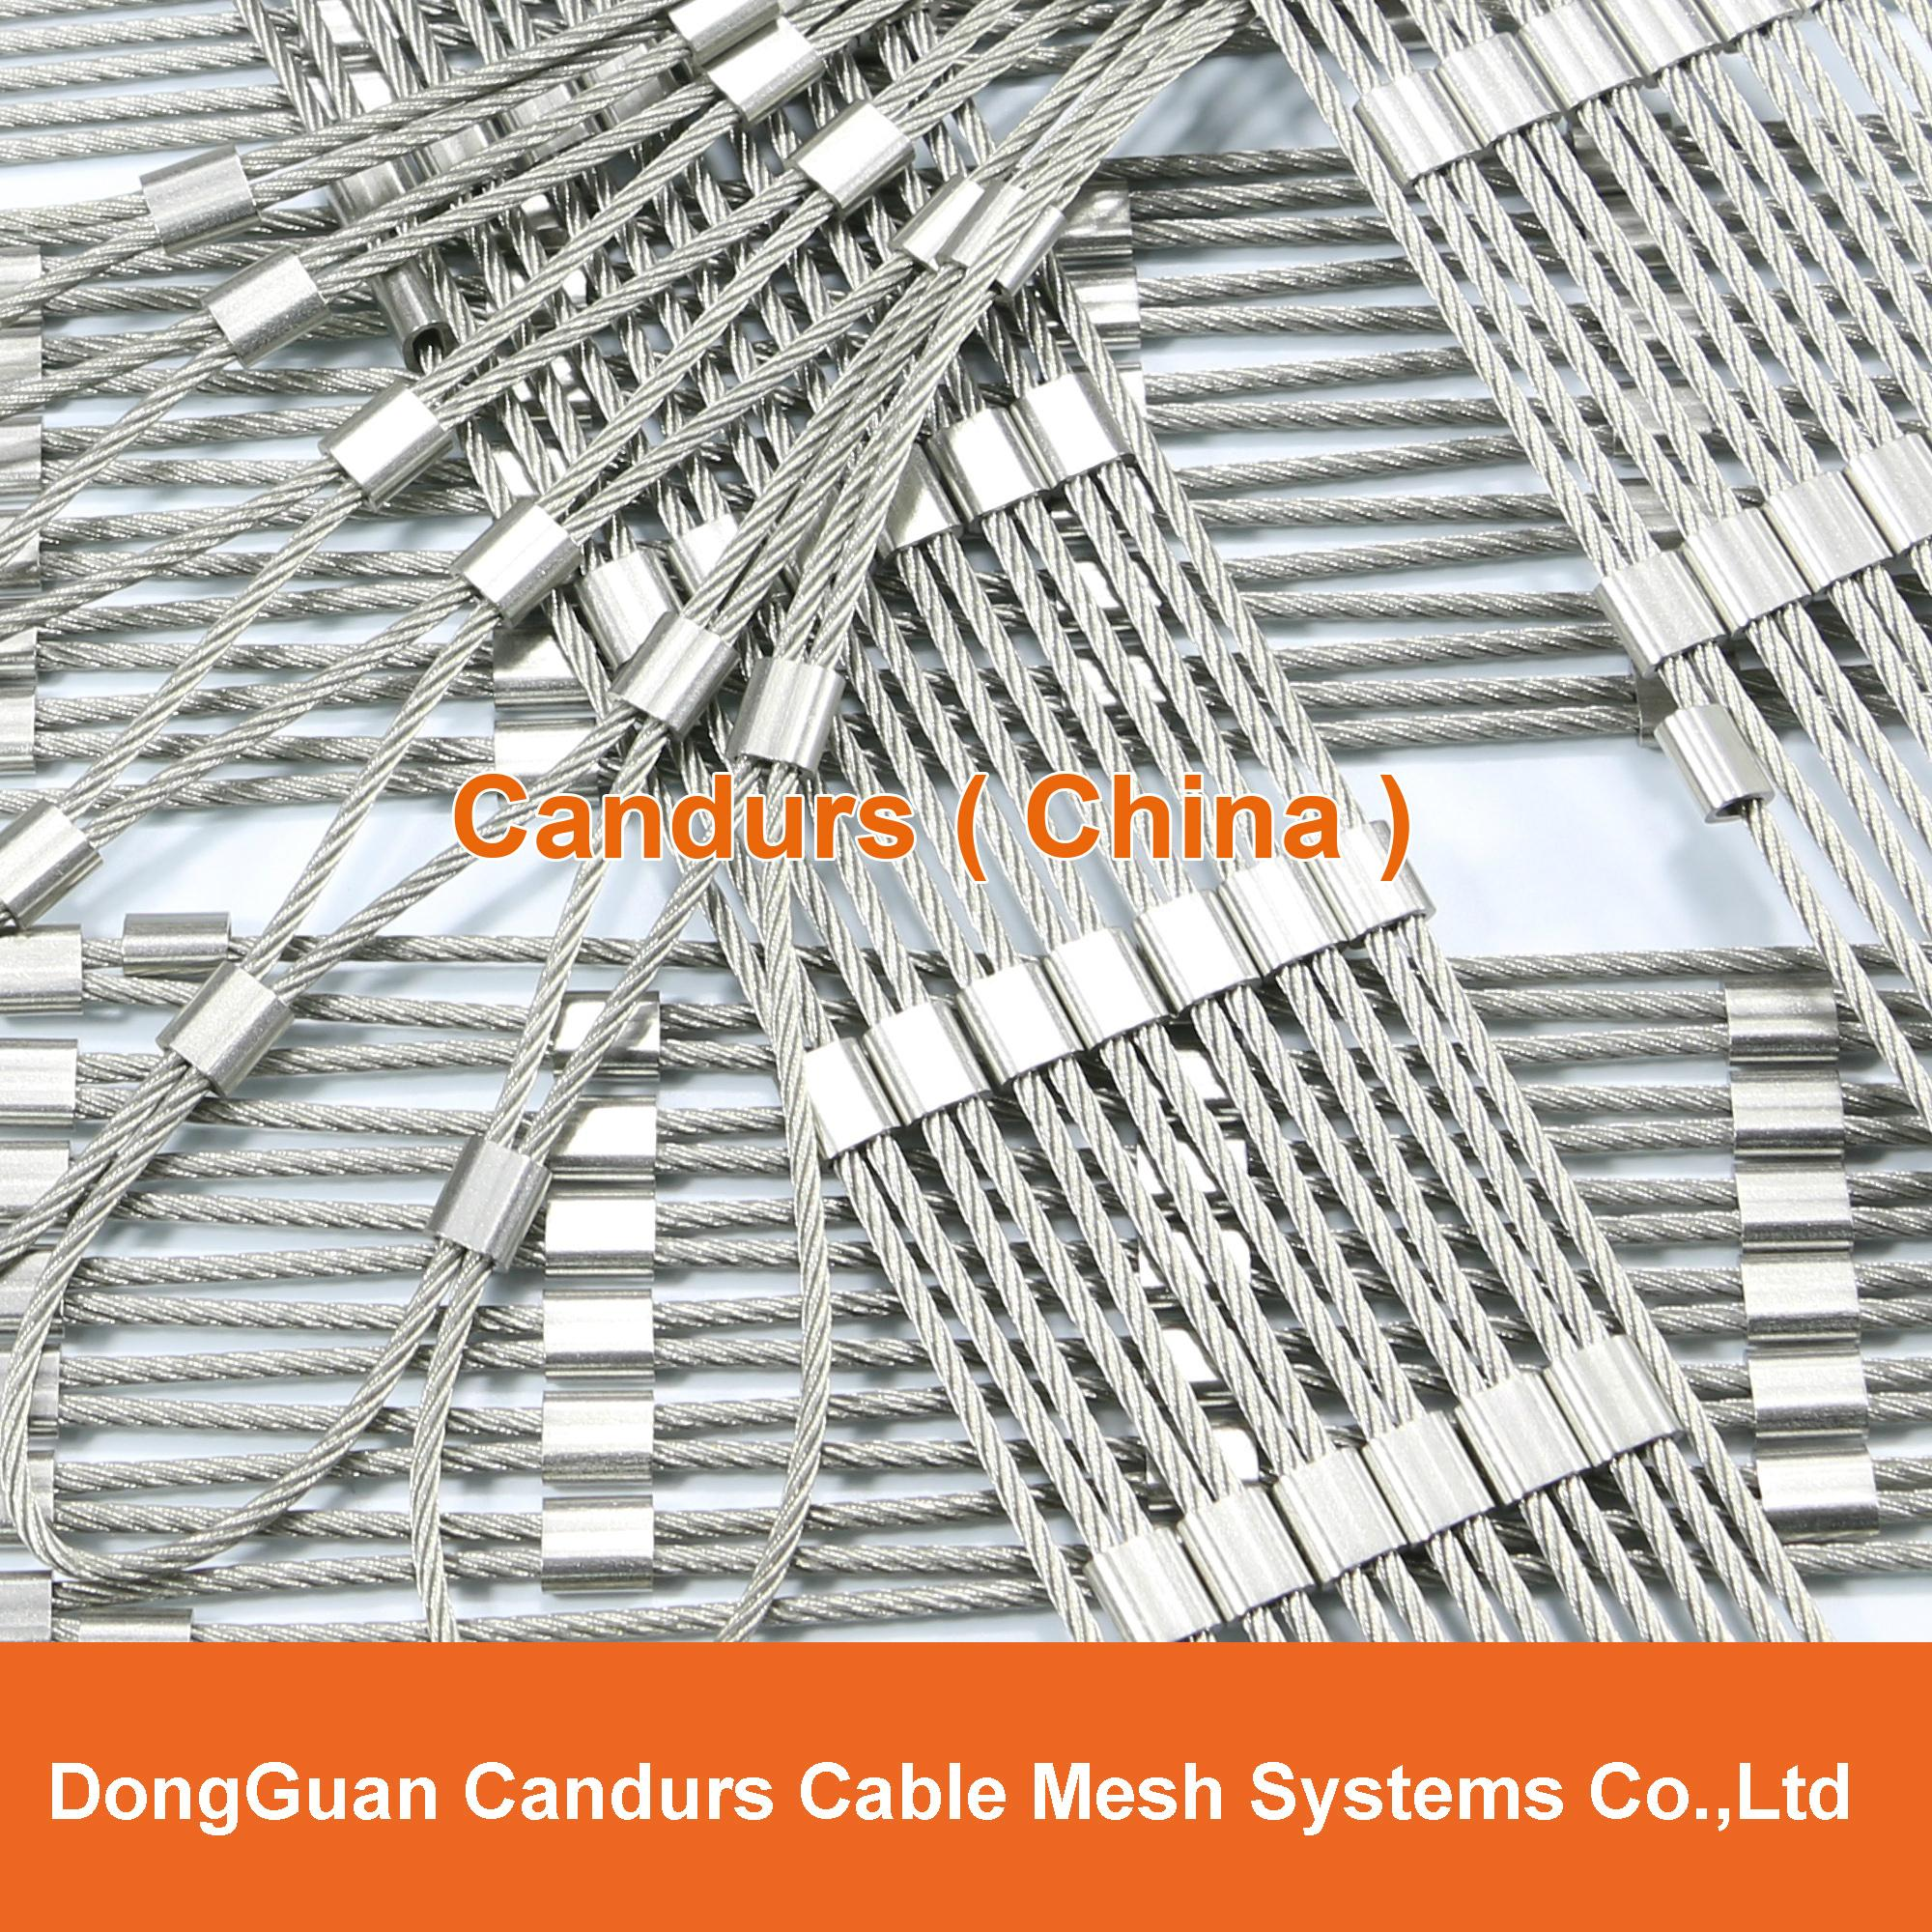 X Tend Flexible Stainless Steel Cable (Rope) Mesh 20